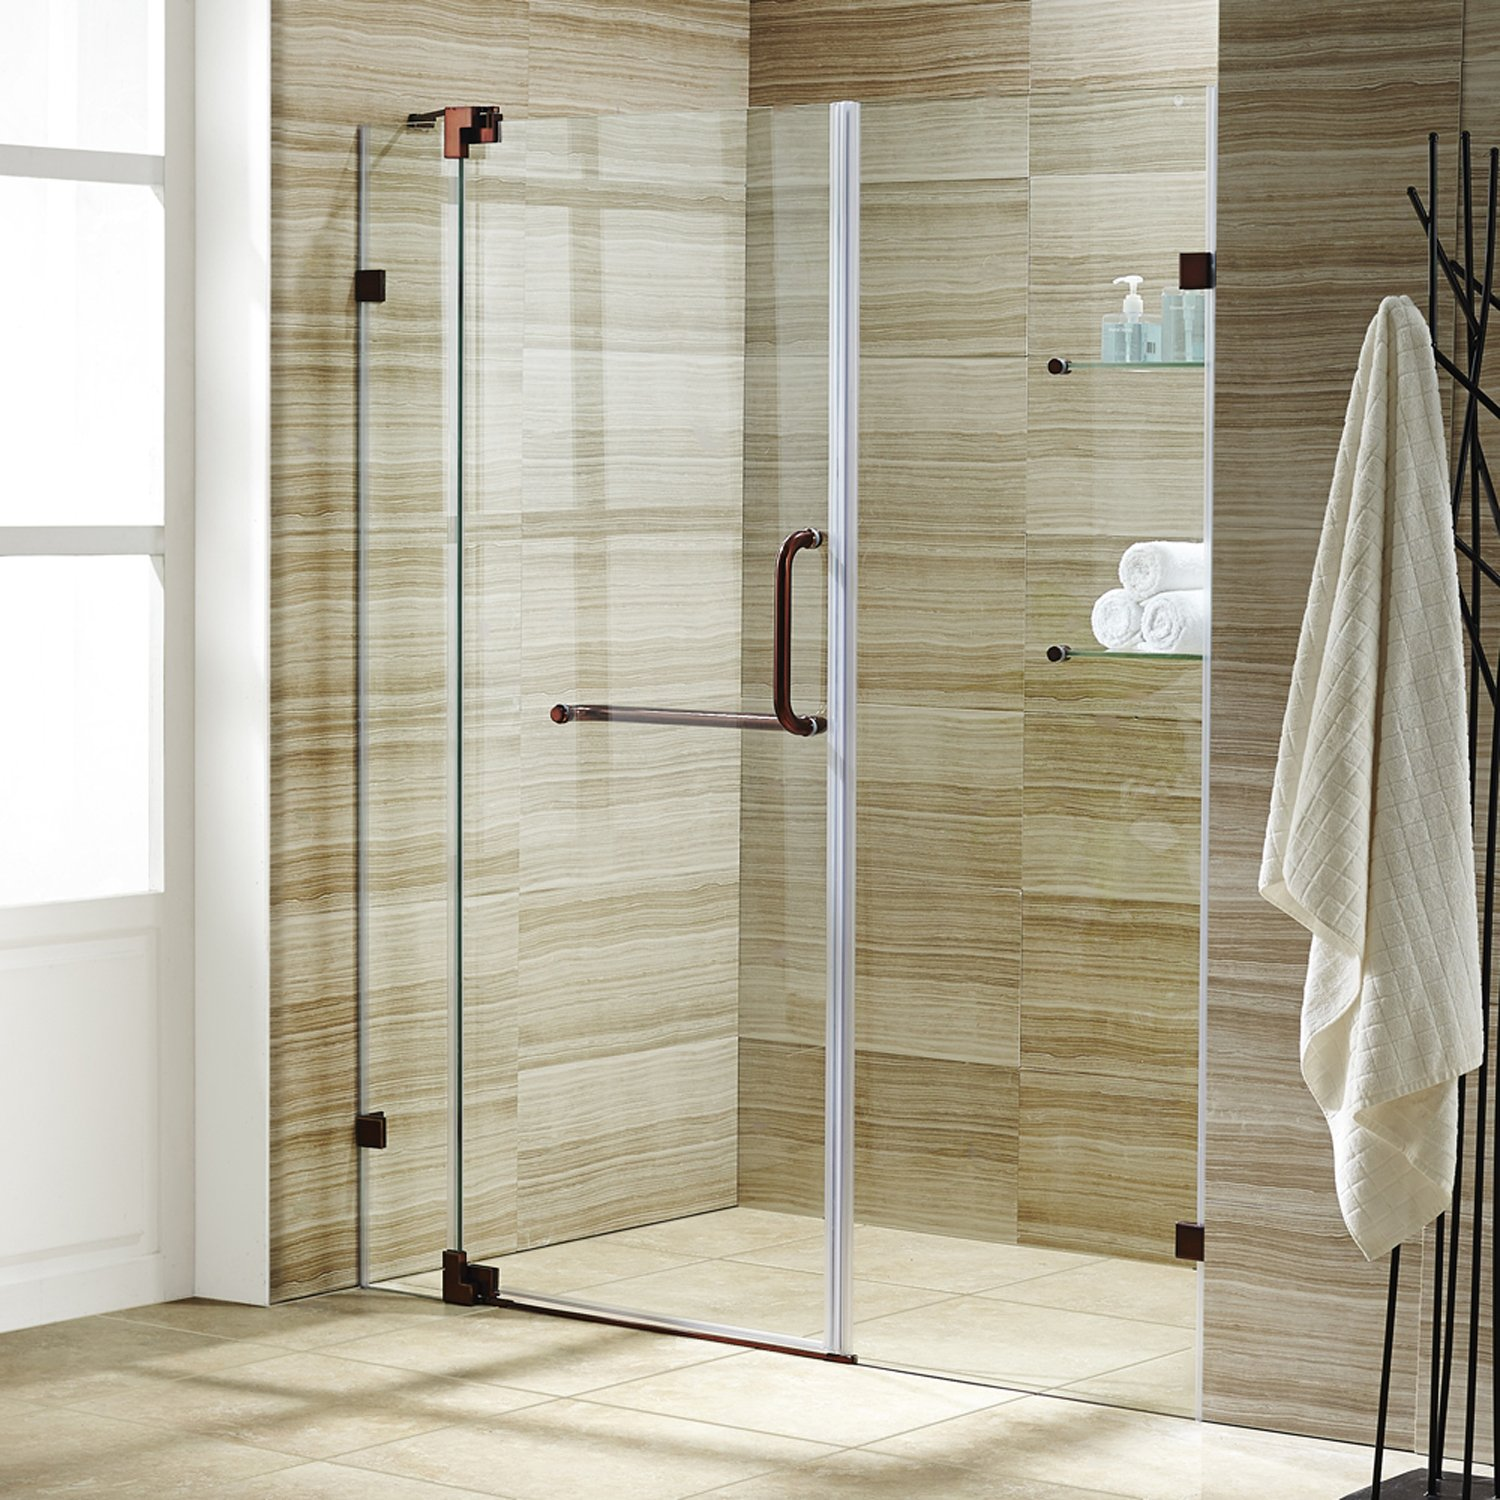 Vigo Pirouette 54 To 60 In Frameless Shower Door With 375 Clear Glass And Oil Rubbed Bronze Hardware Com